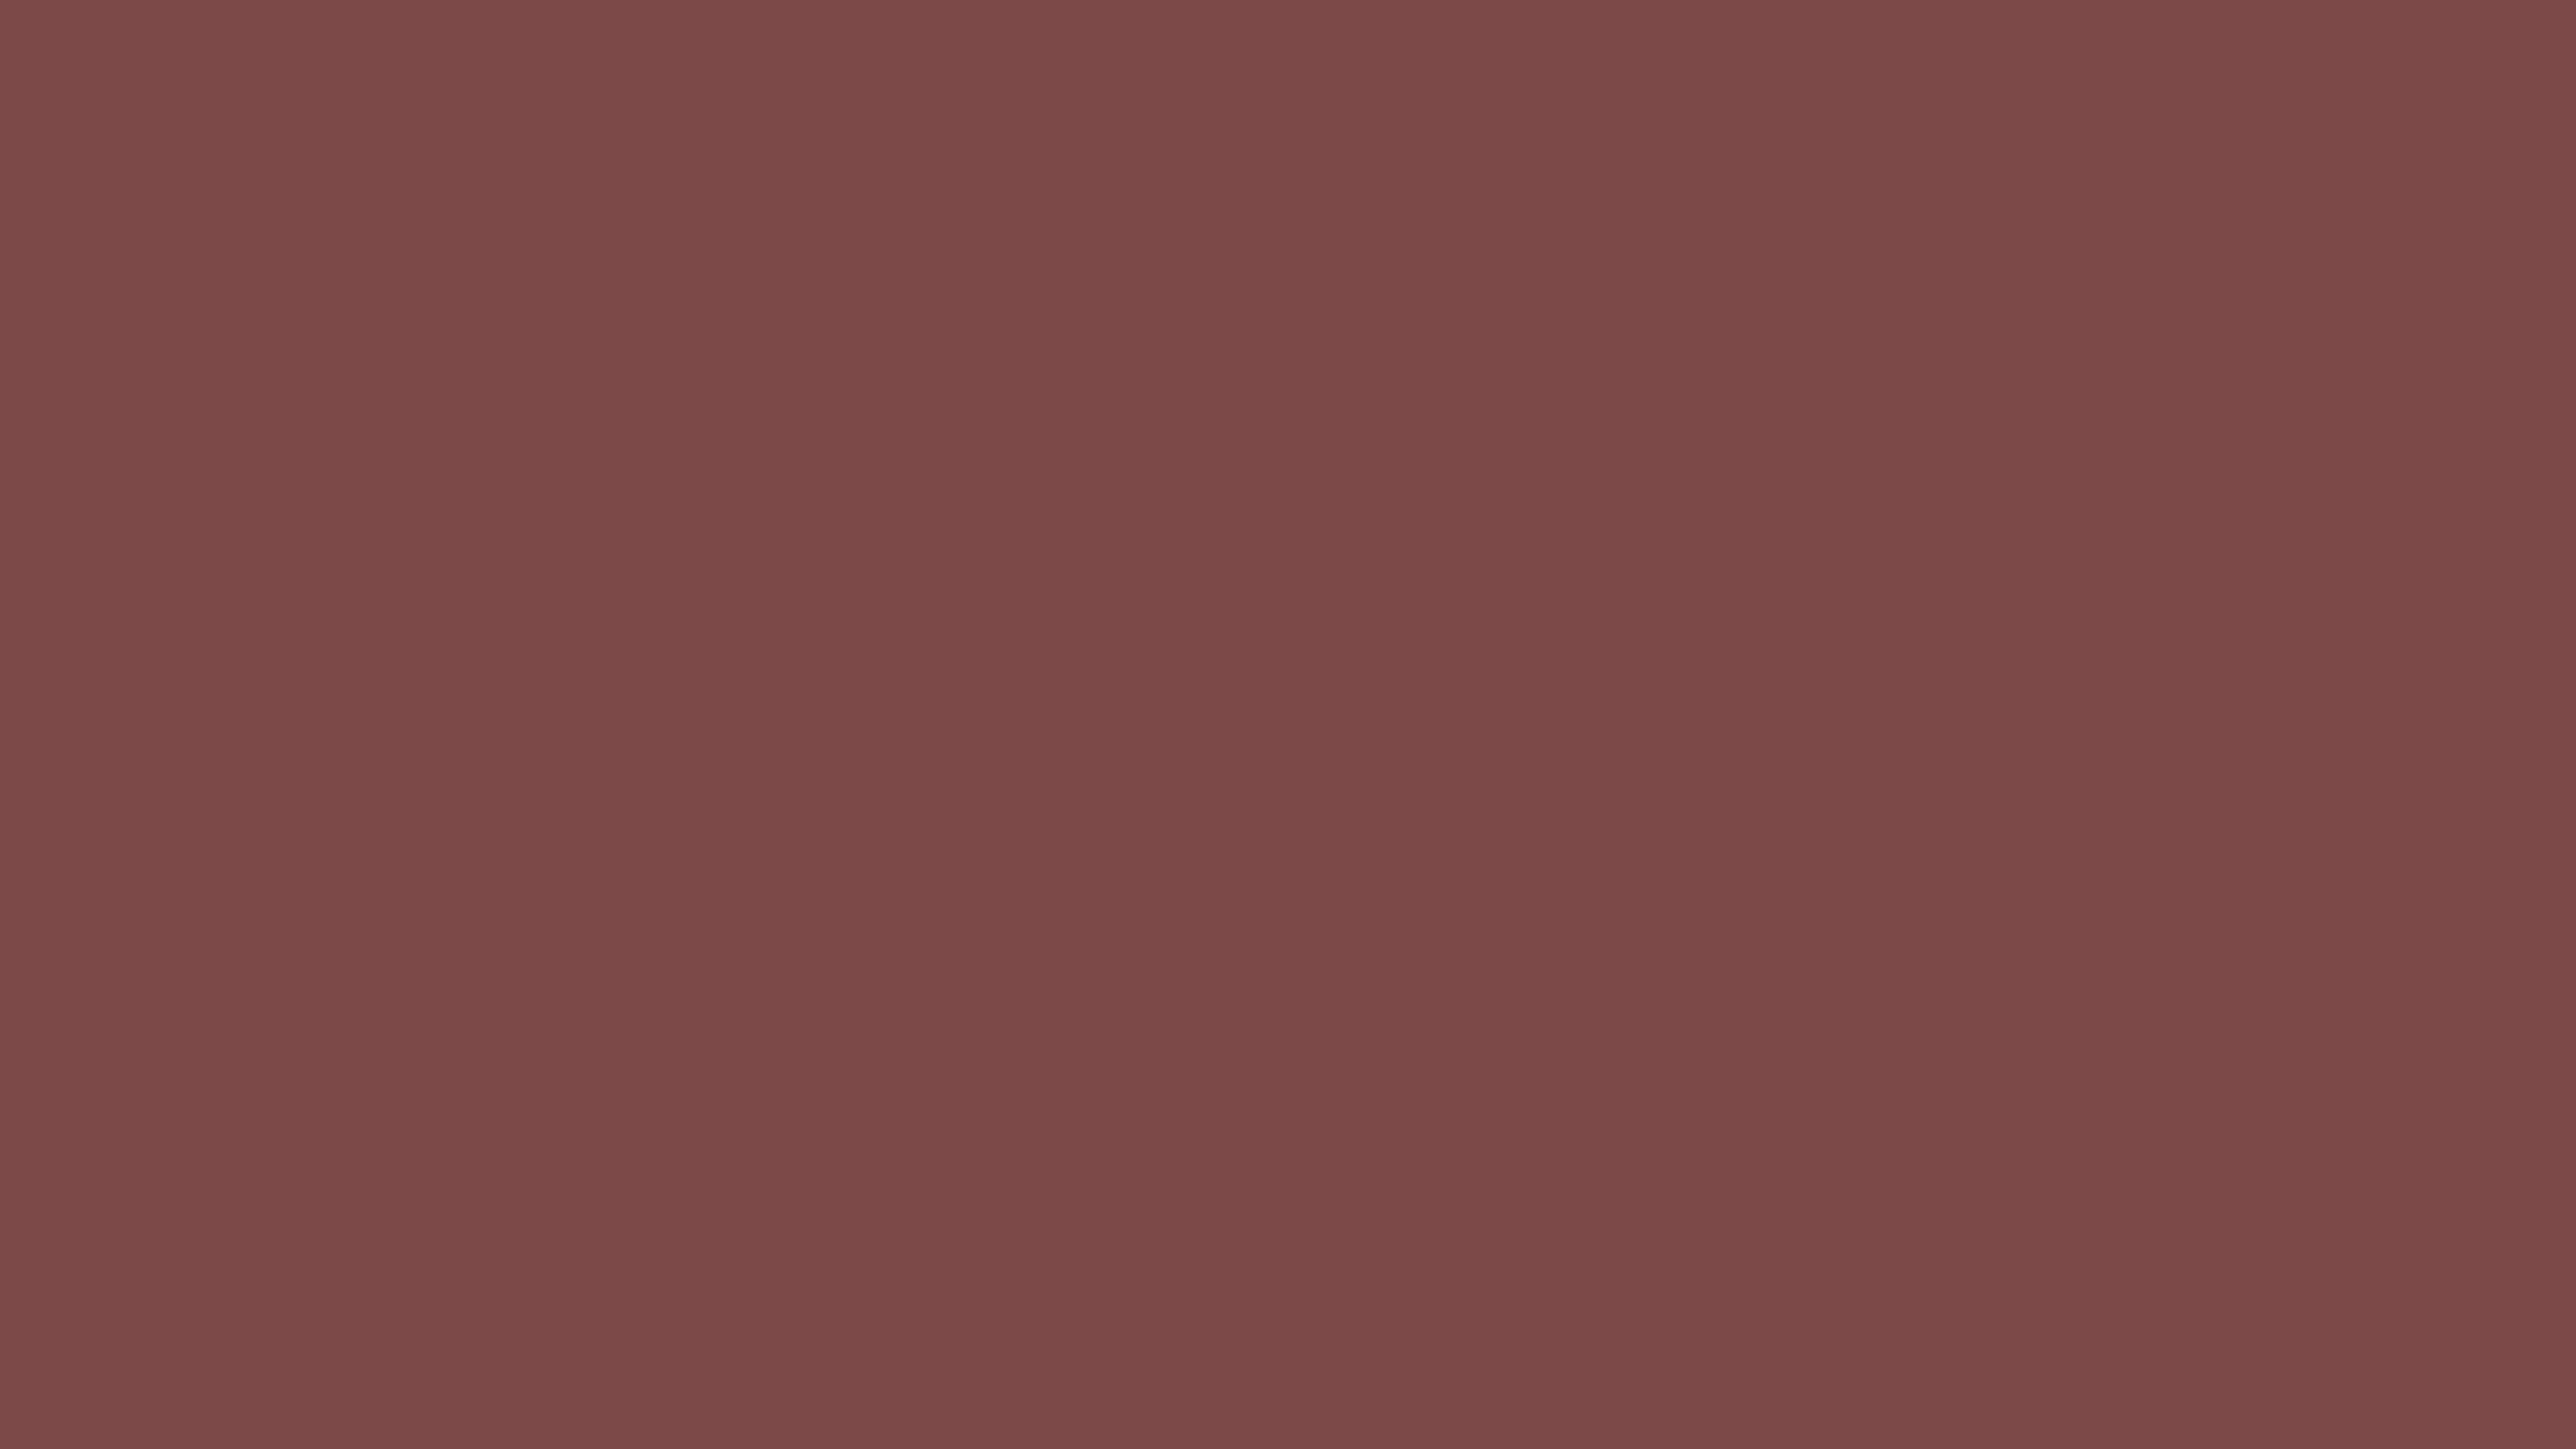 4096x2304 Tuscan Red Solid Color Background